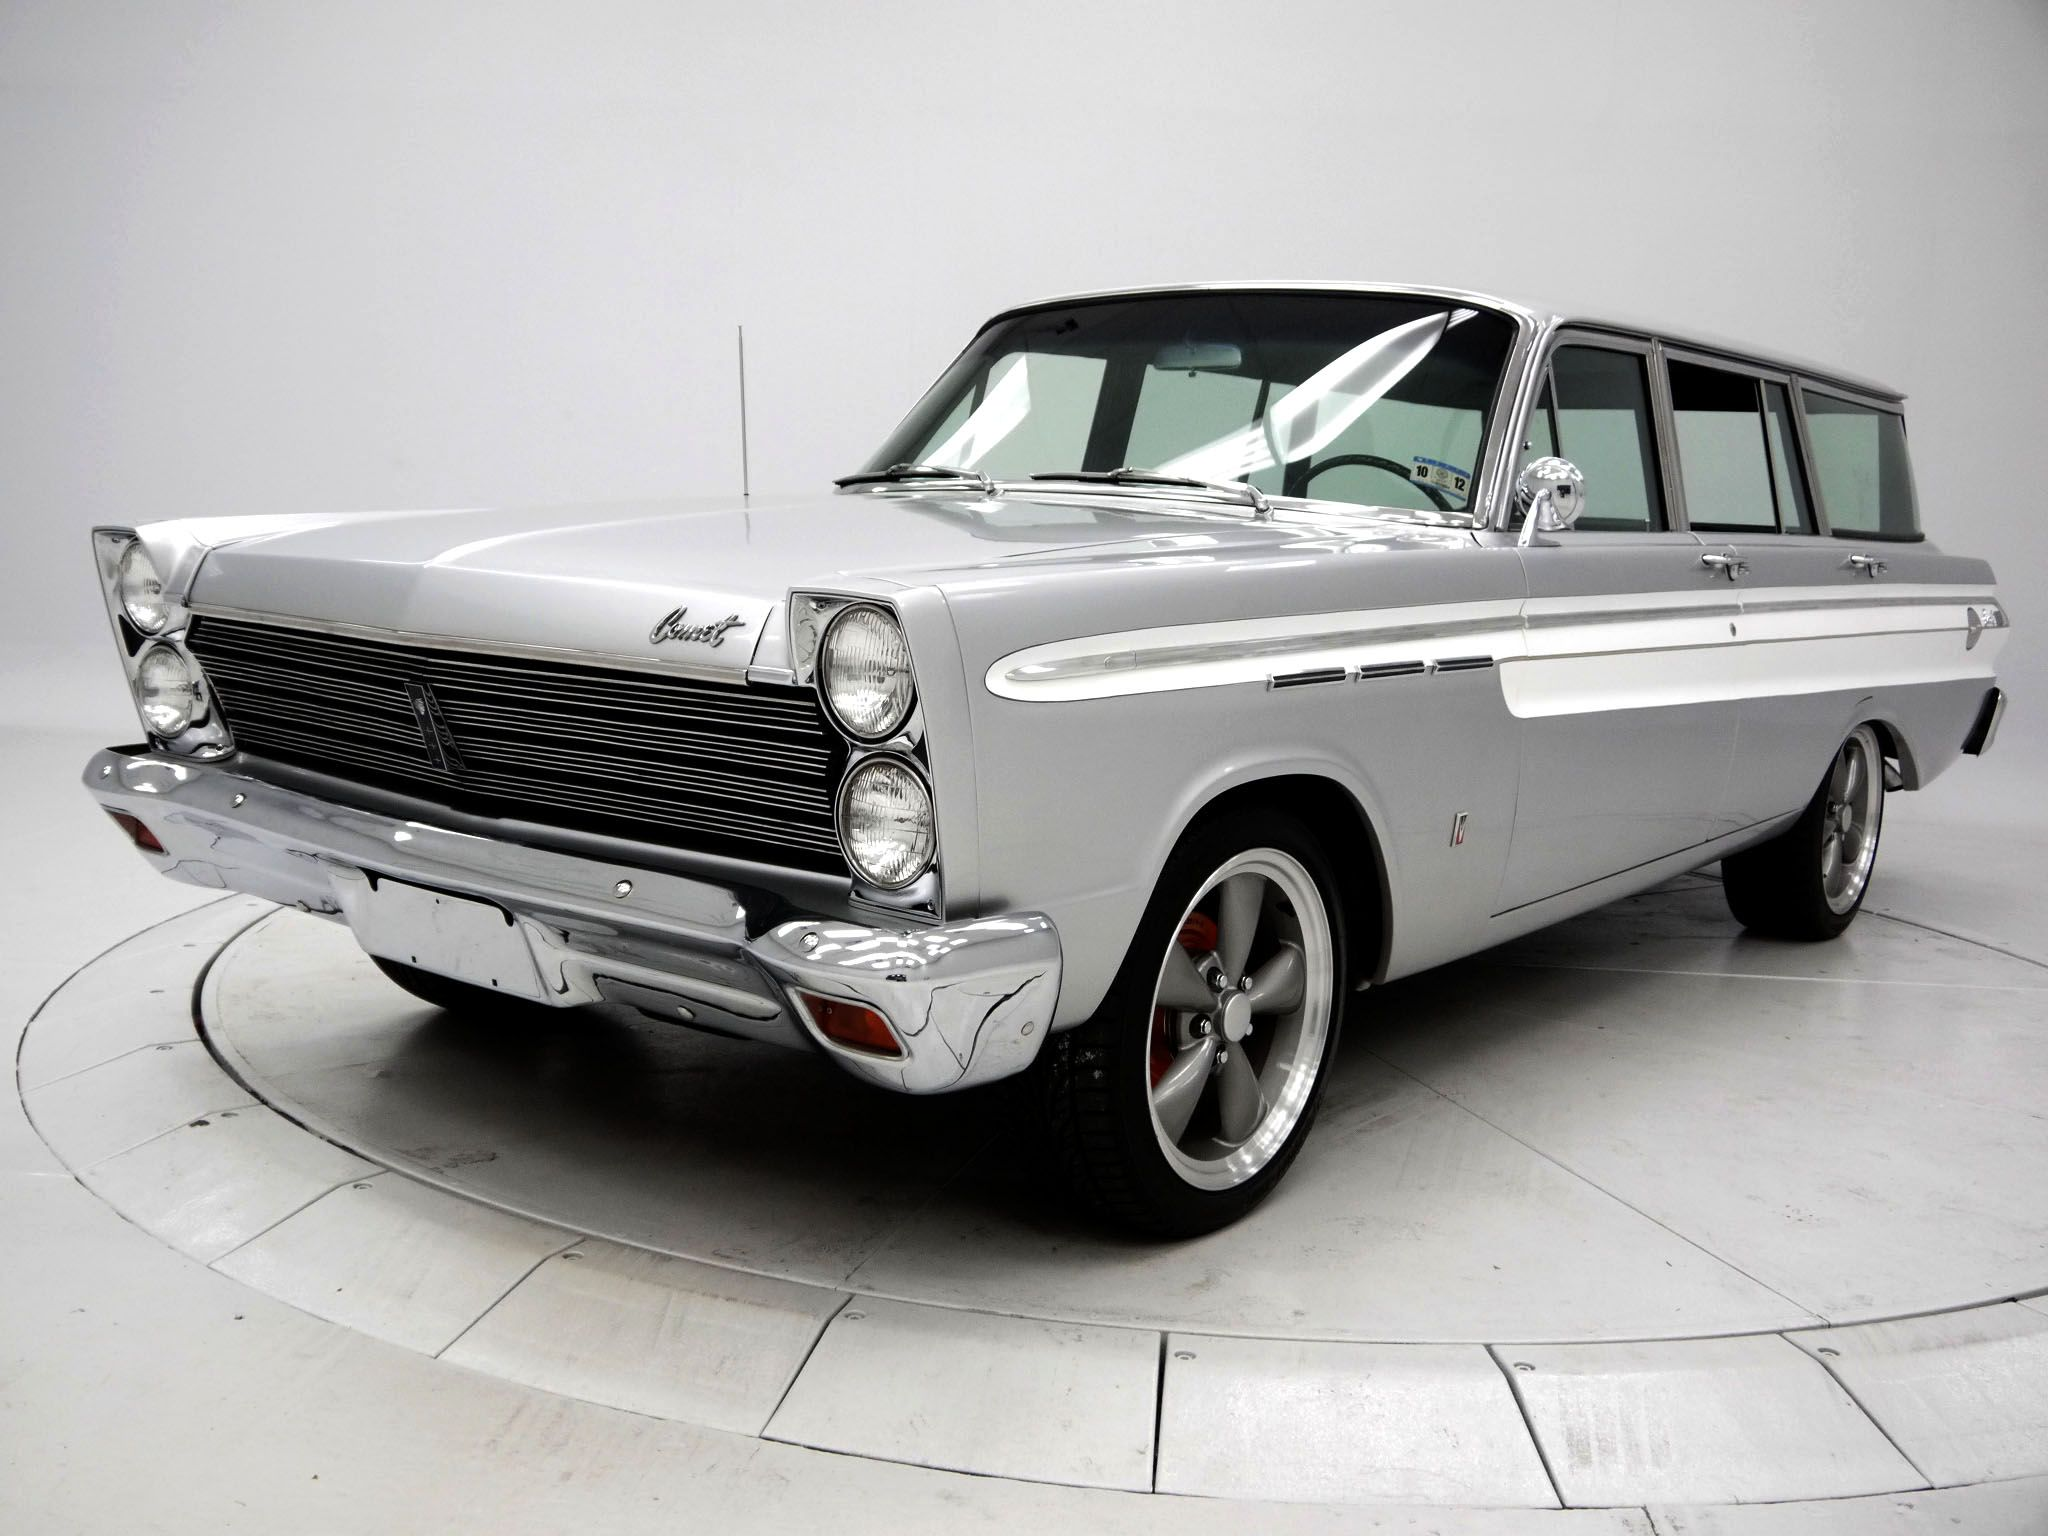 1965 Mercury Comet Wagon | grey | Pinterest | Classic trucks ...